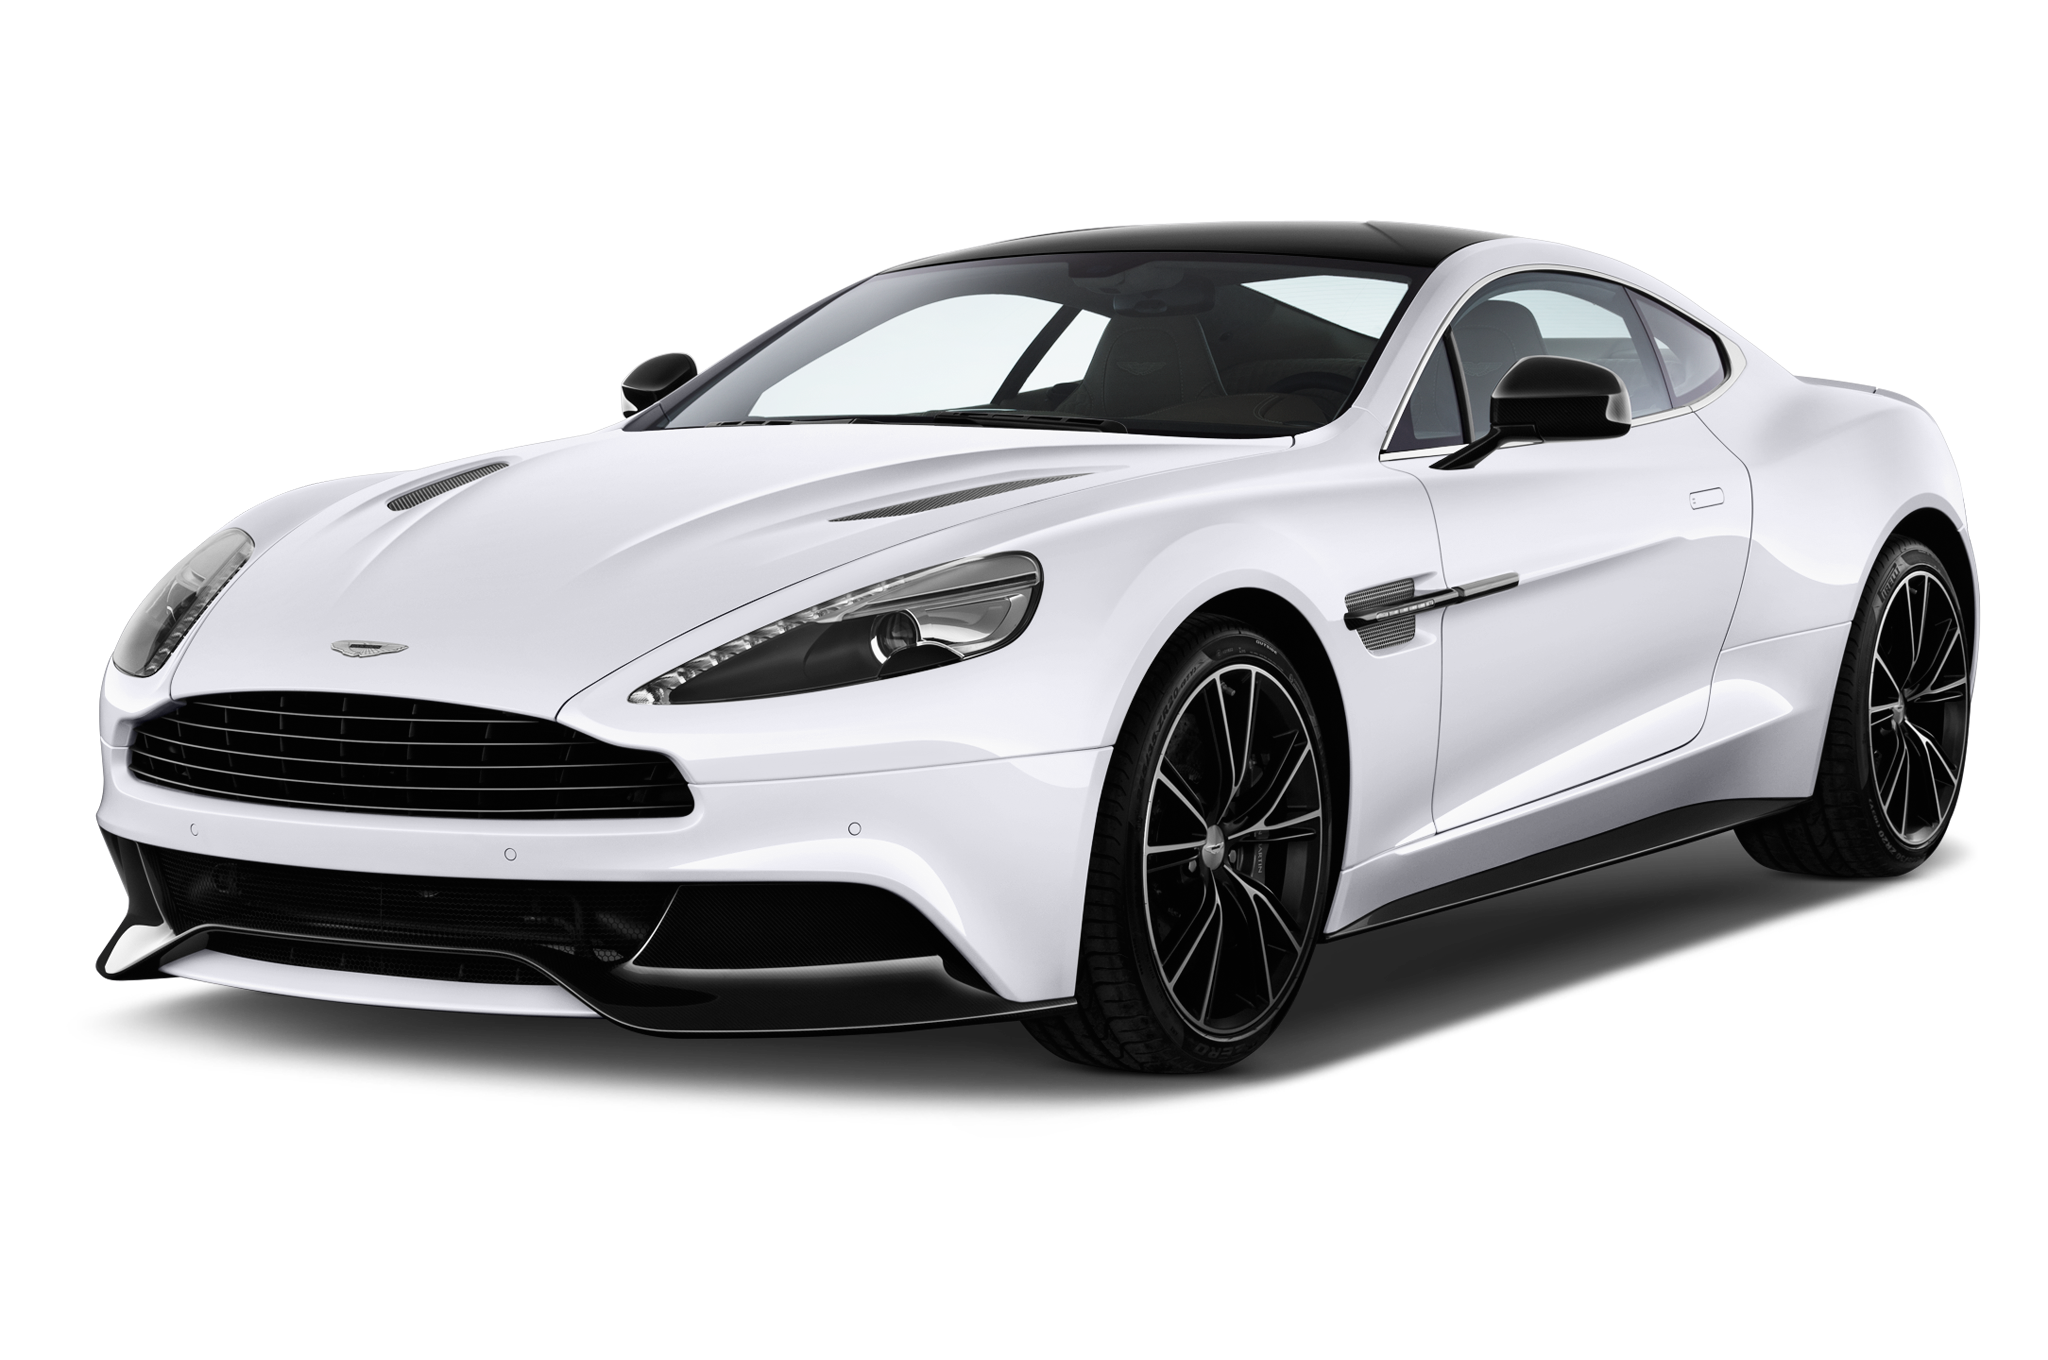 Aston Martin Vanquish Zagato Volante Priced From - How much is an aston martin